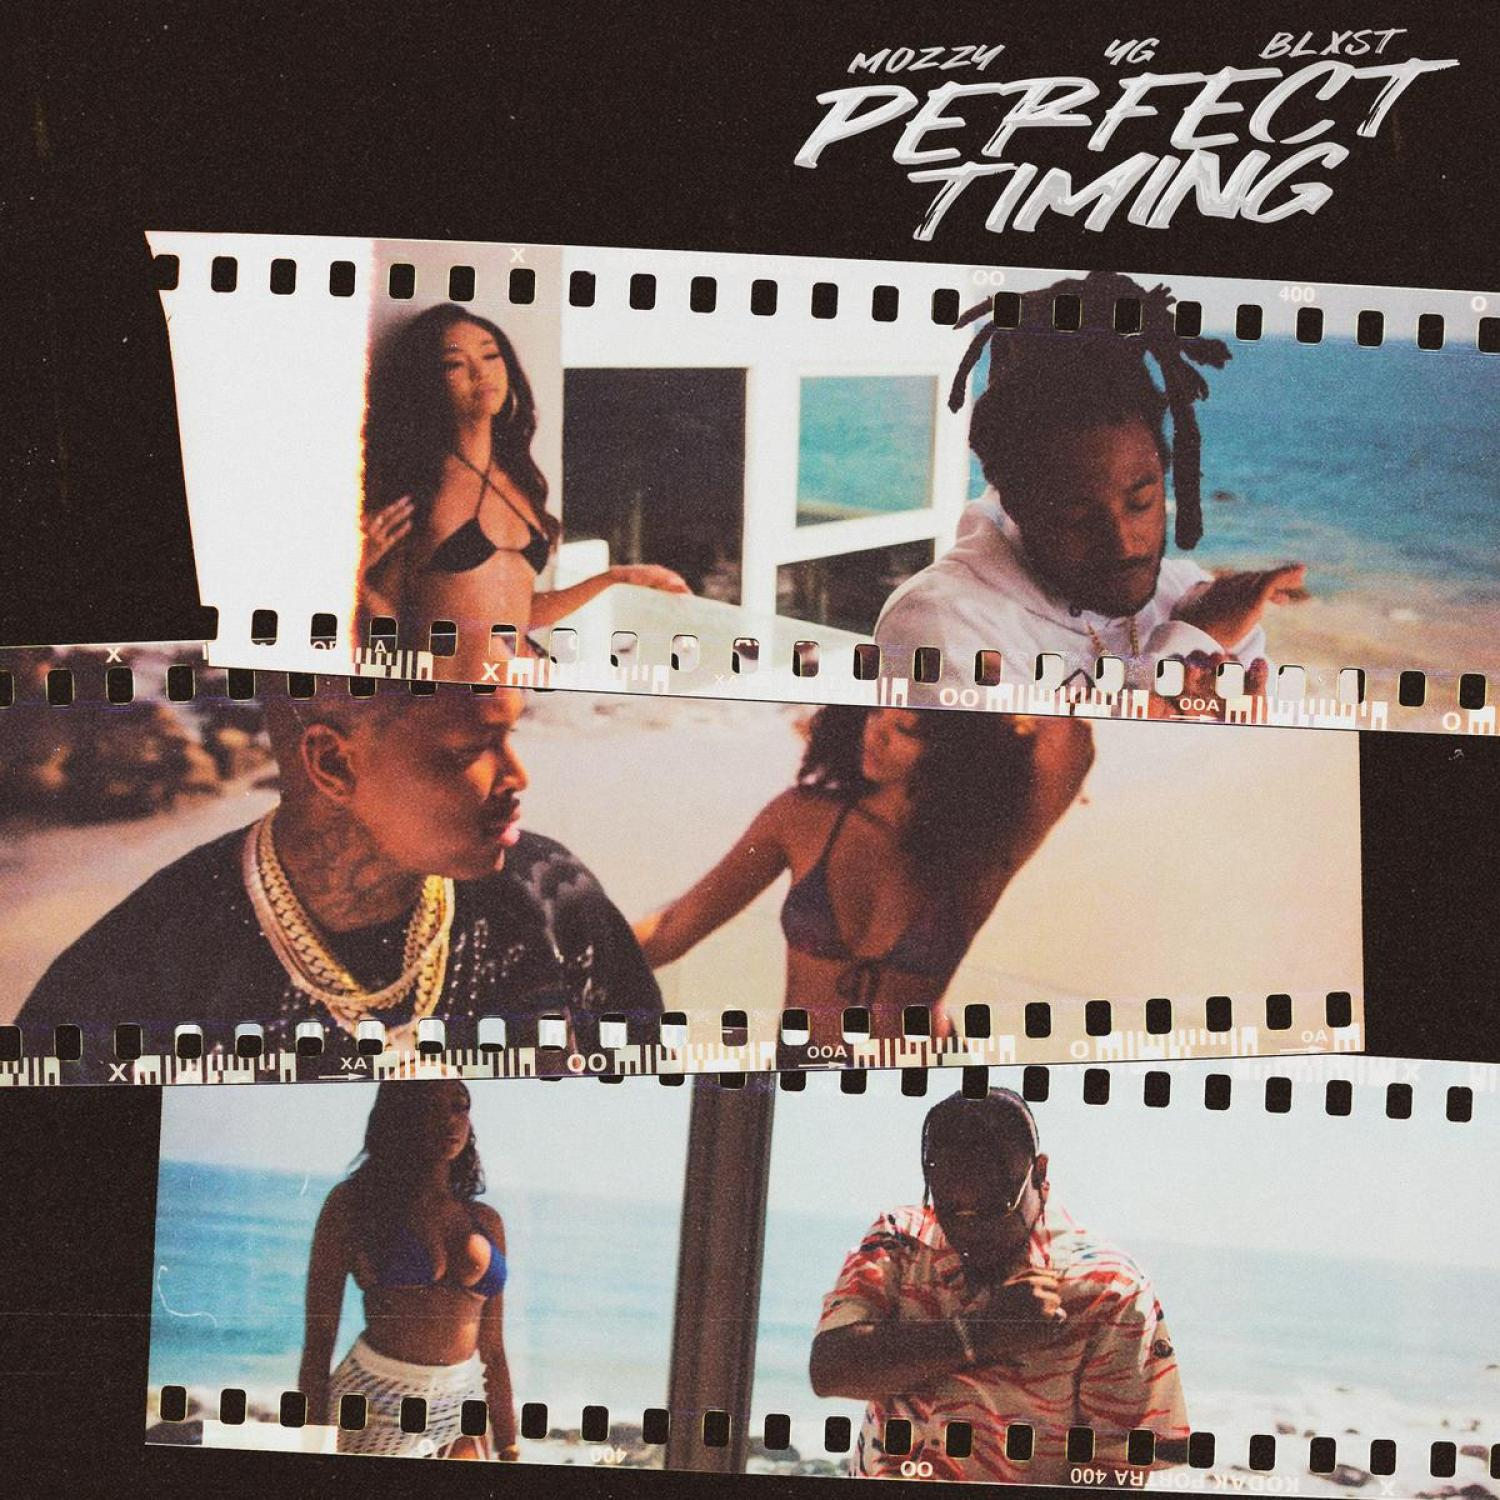 DOWNLOAD MP3: YG ft. Mozzy & Blxst – Perfect Timing AUDIO 320kbps